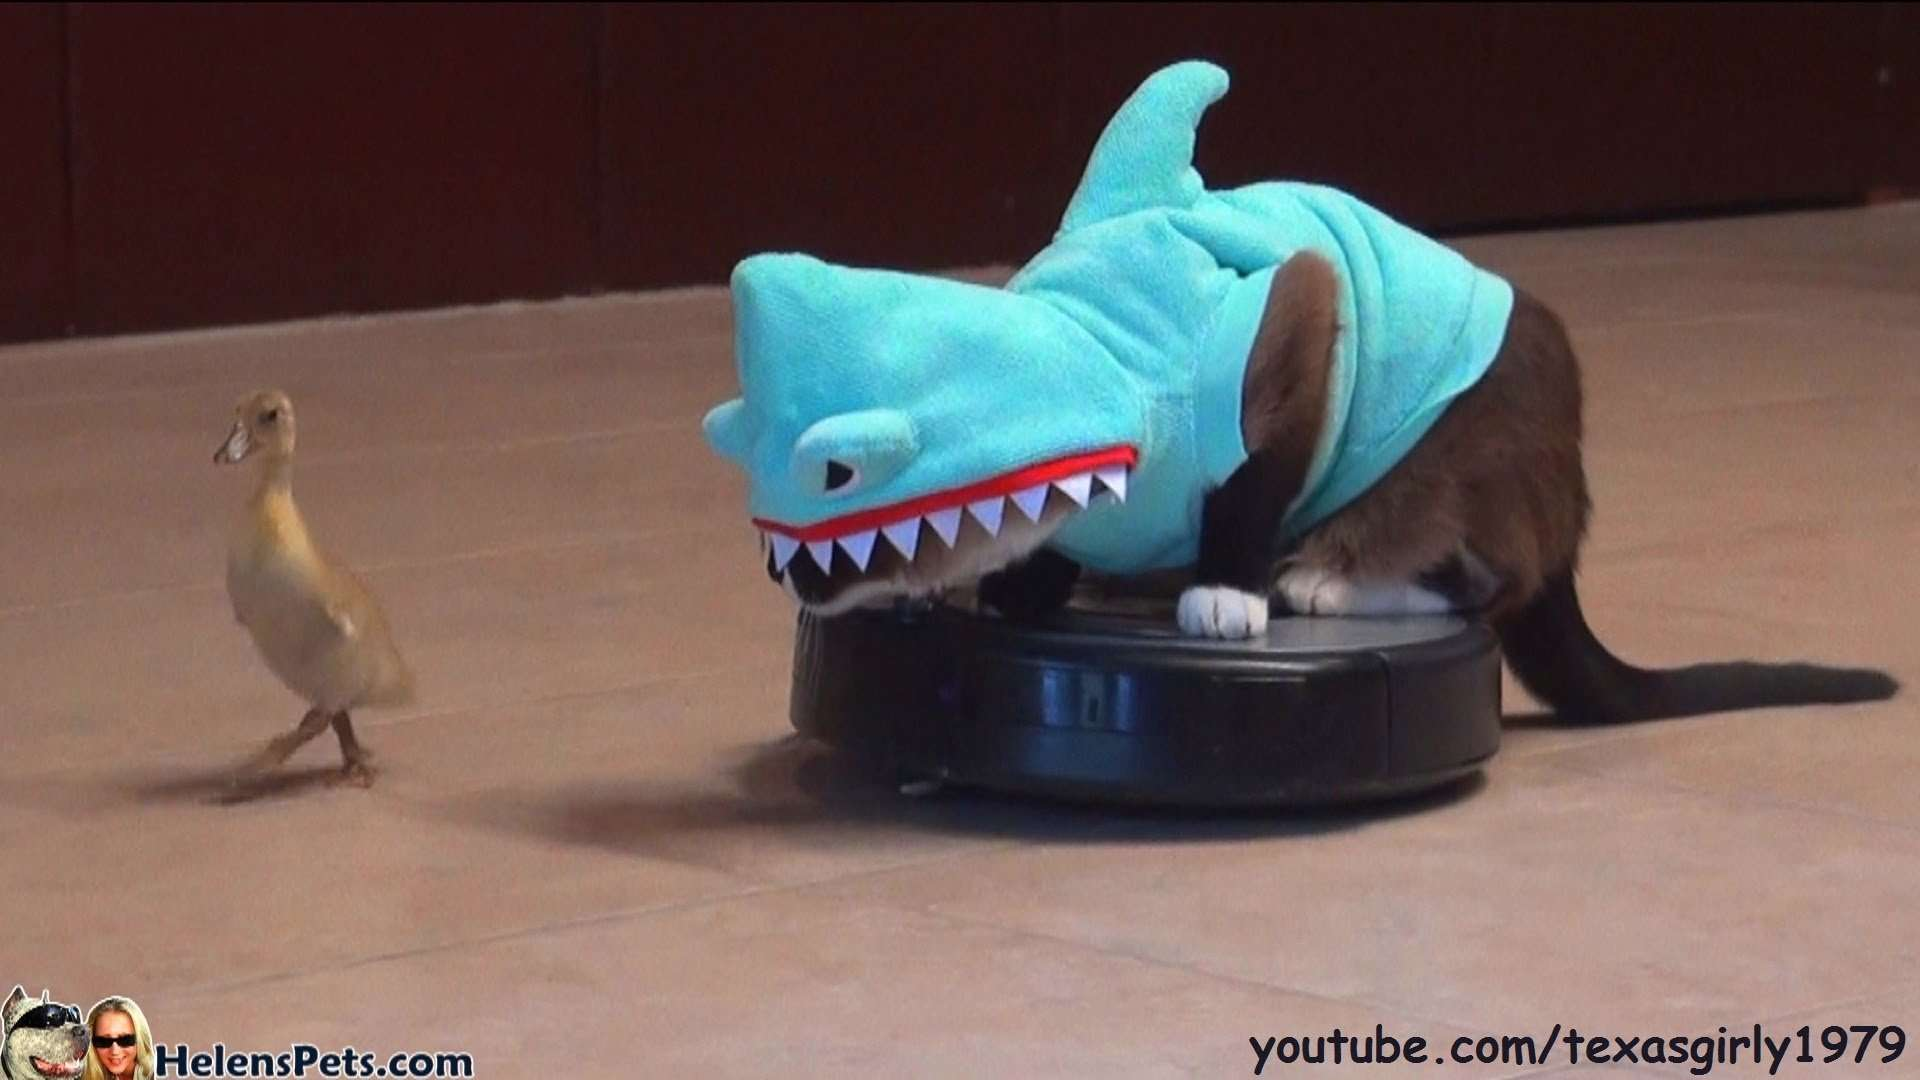 Cat In A Shark Costume Chases A Duck While Riding A Roomba - YouTube